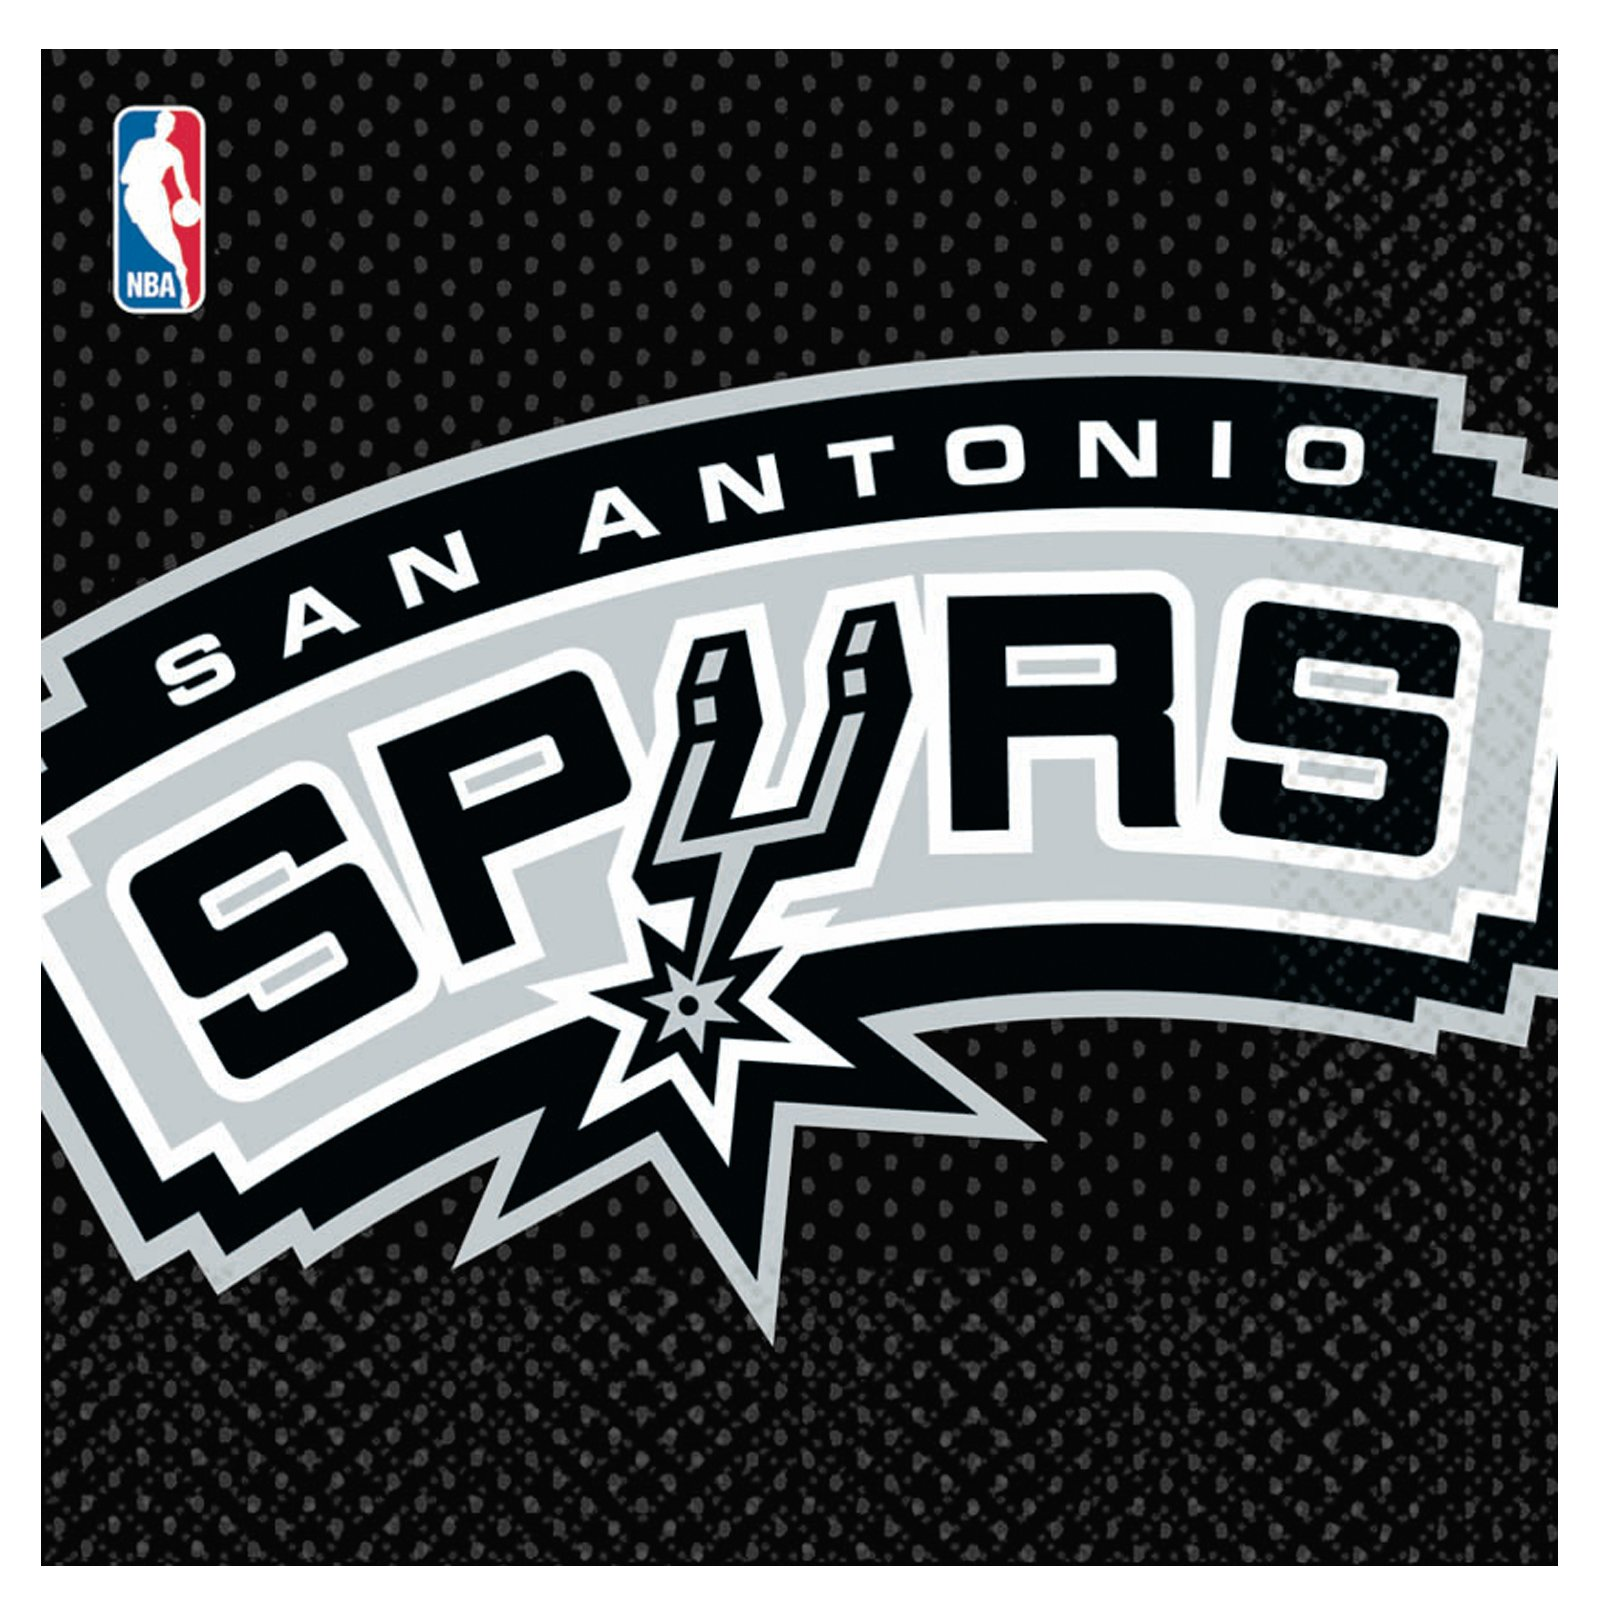 San Antonio Spurs Basketball - Lunch Napkins (16 count)